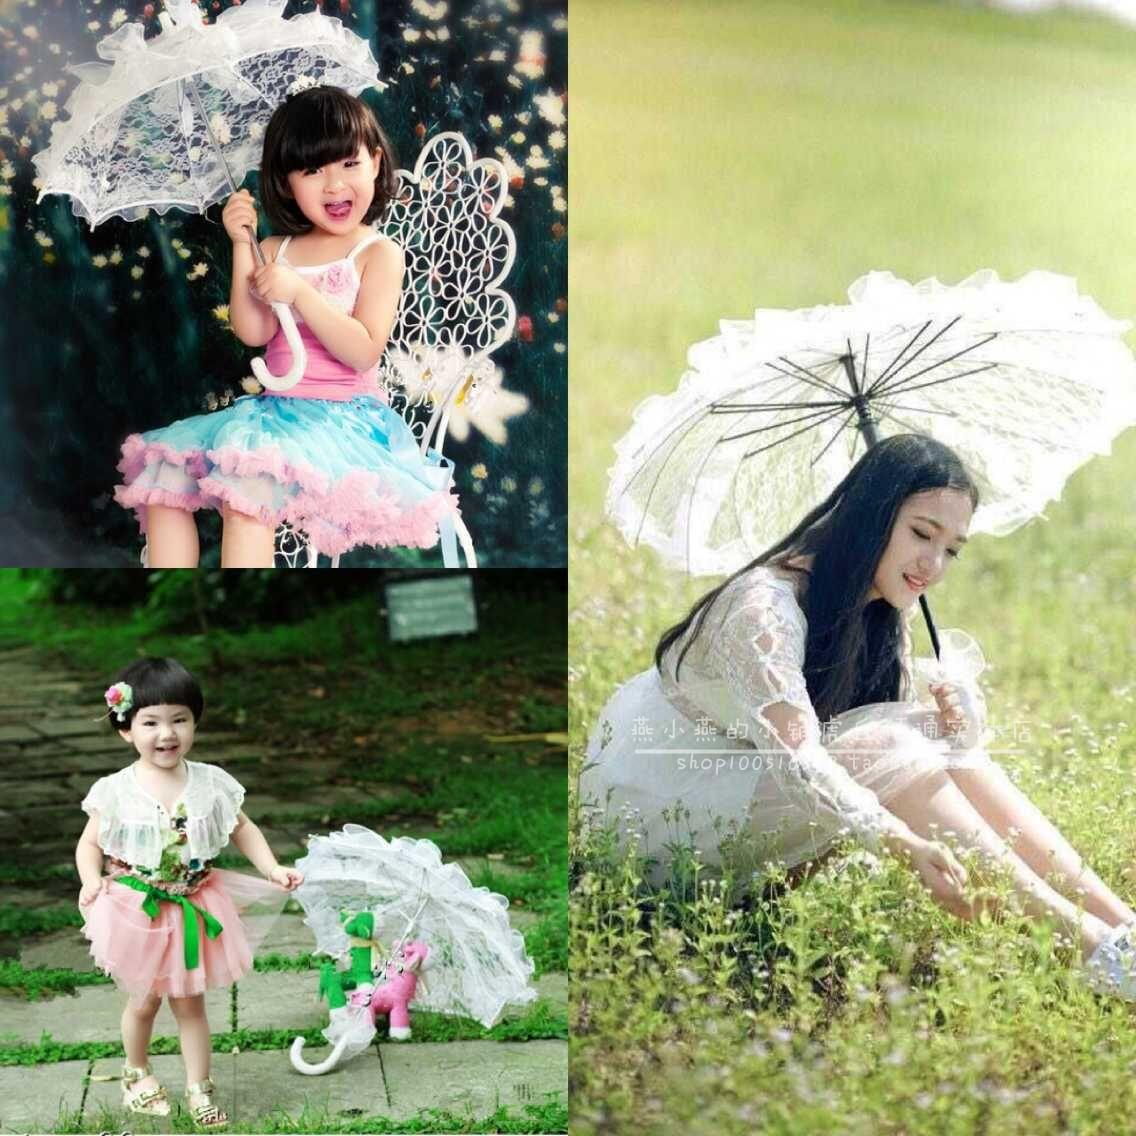 Studio shoot props wedding photography supplies childrenphotographed on location baby lace umbrella small lace umbrella